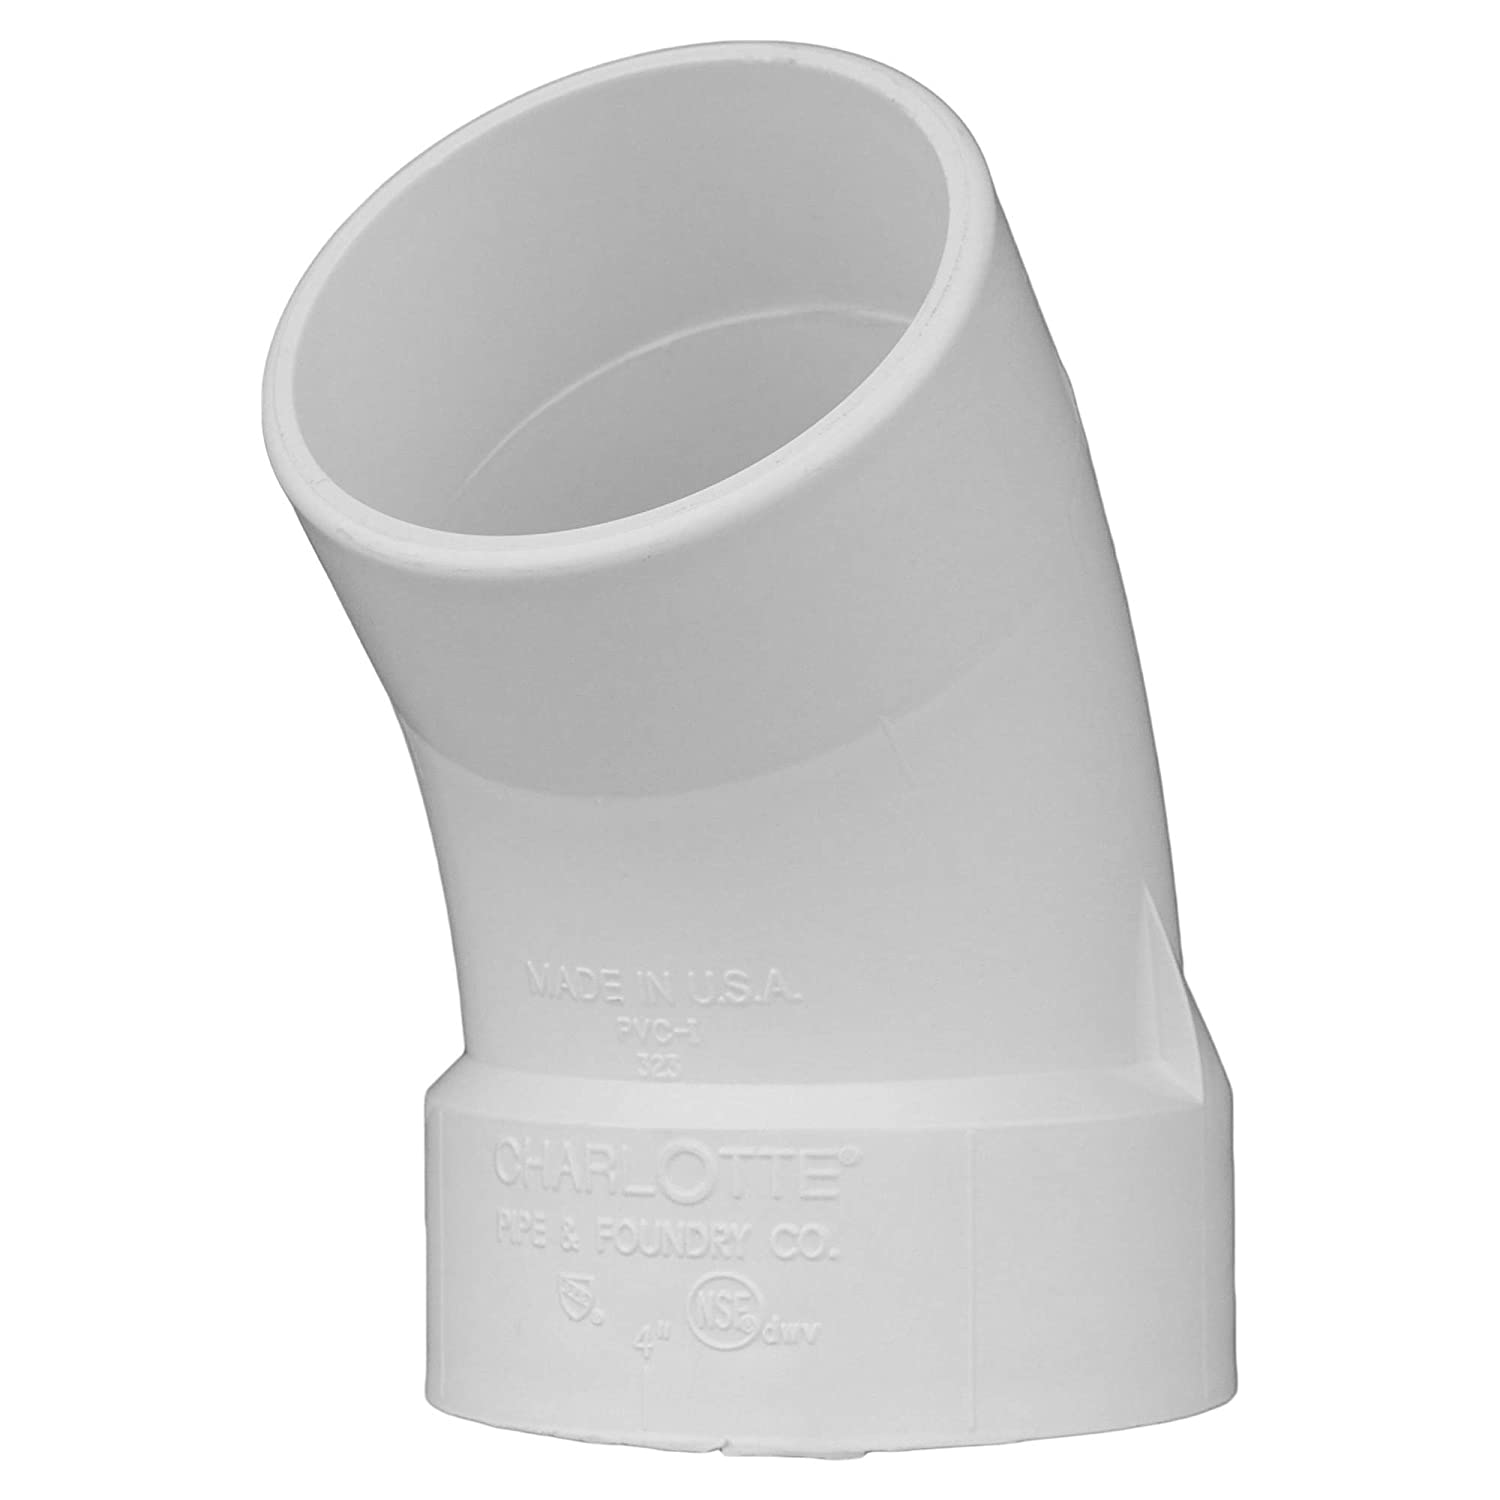 Drain, Waste and Vent Single Unit Schedule 40 Charlotte Pipe 1-1//2 DWV 1//8 Bend Street PVC DWV